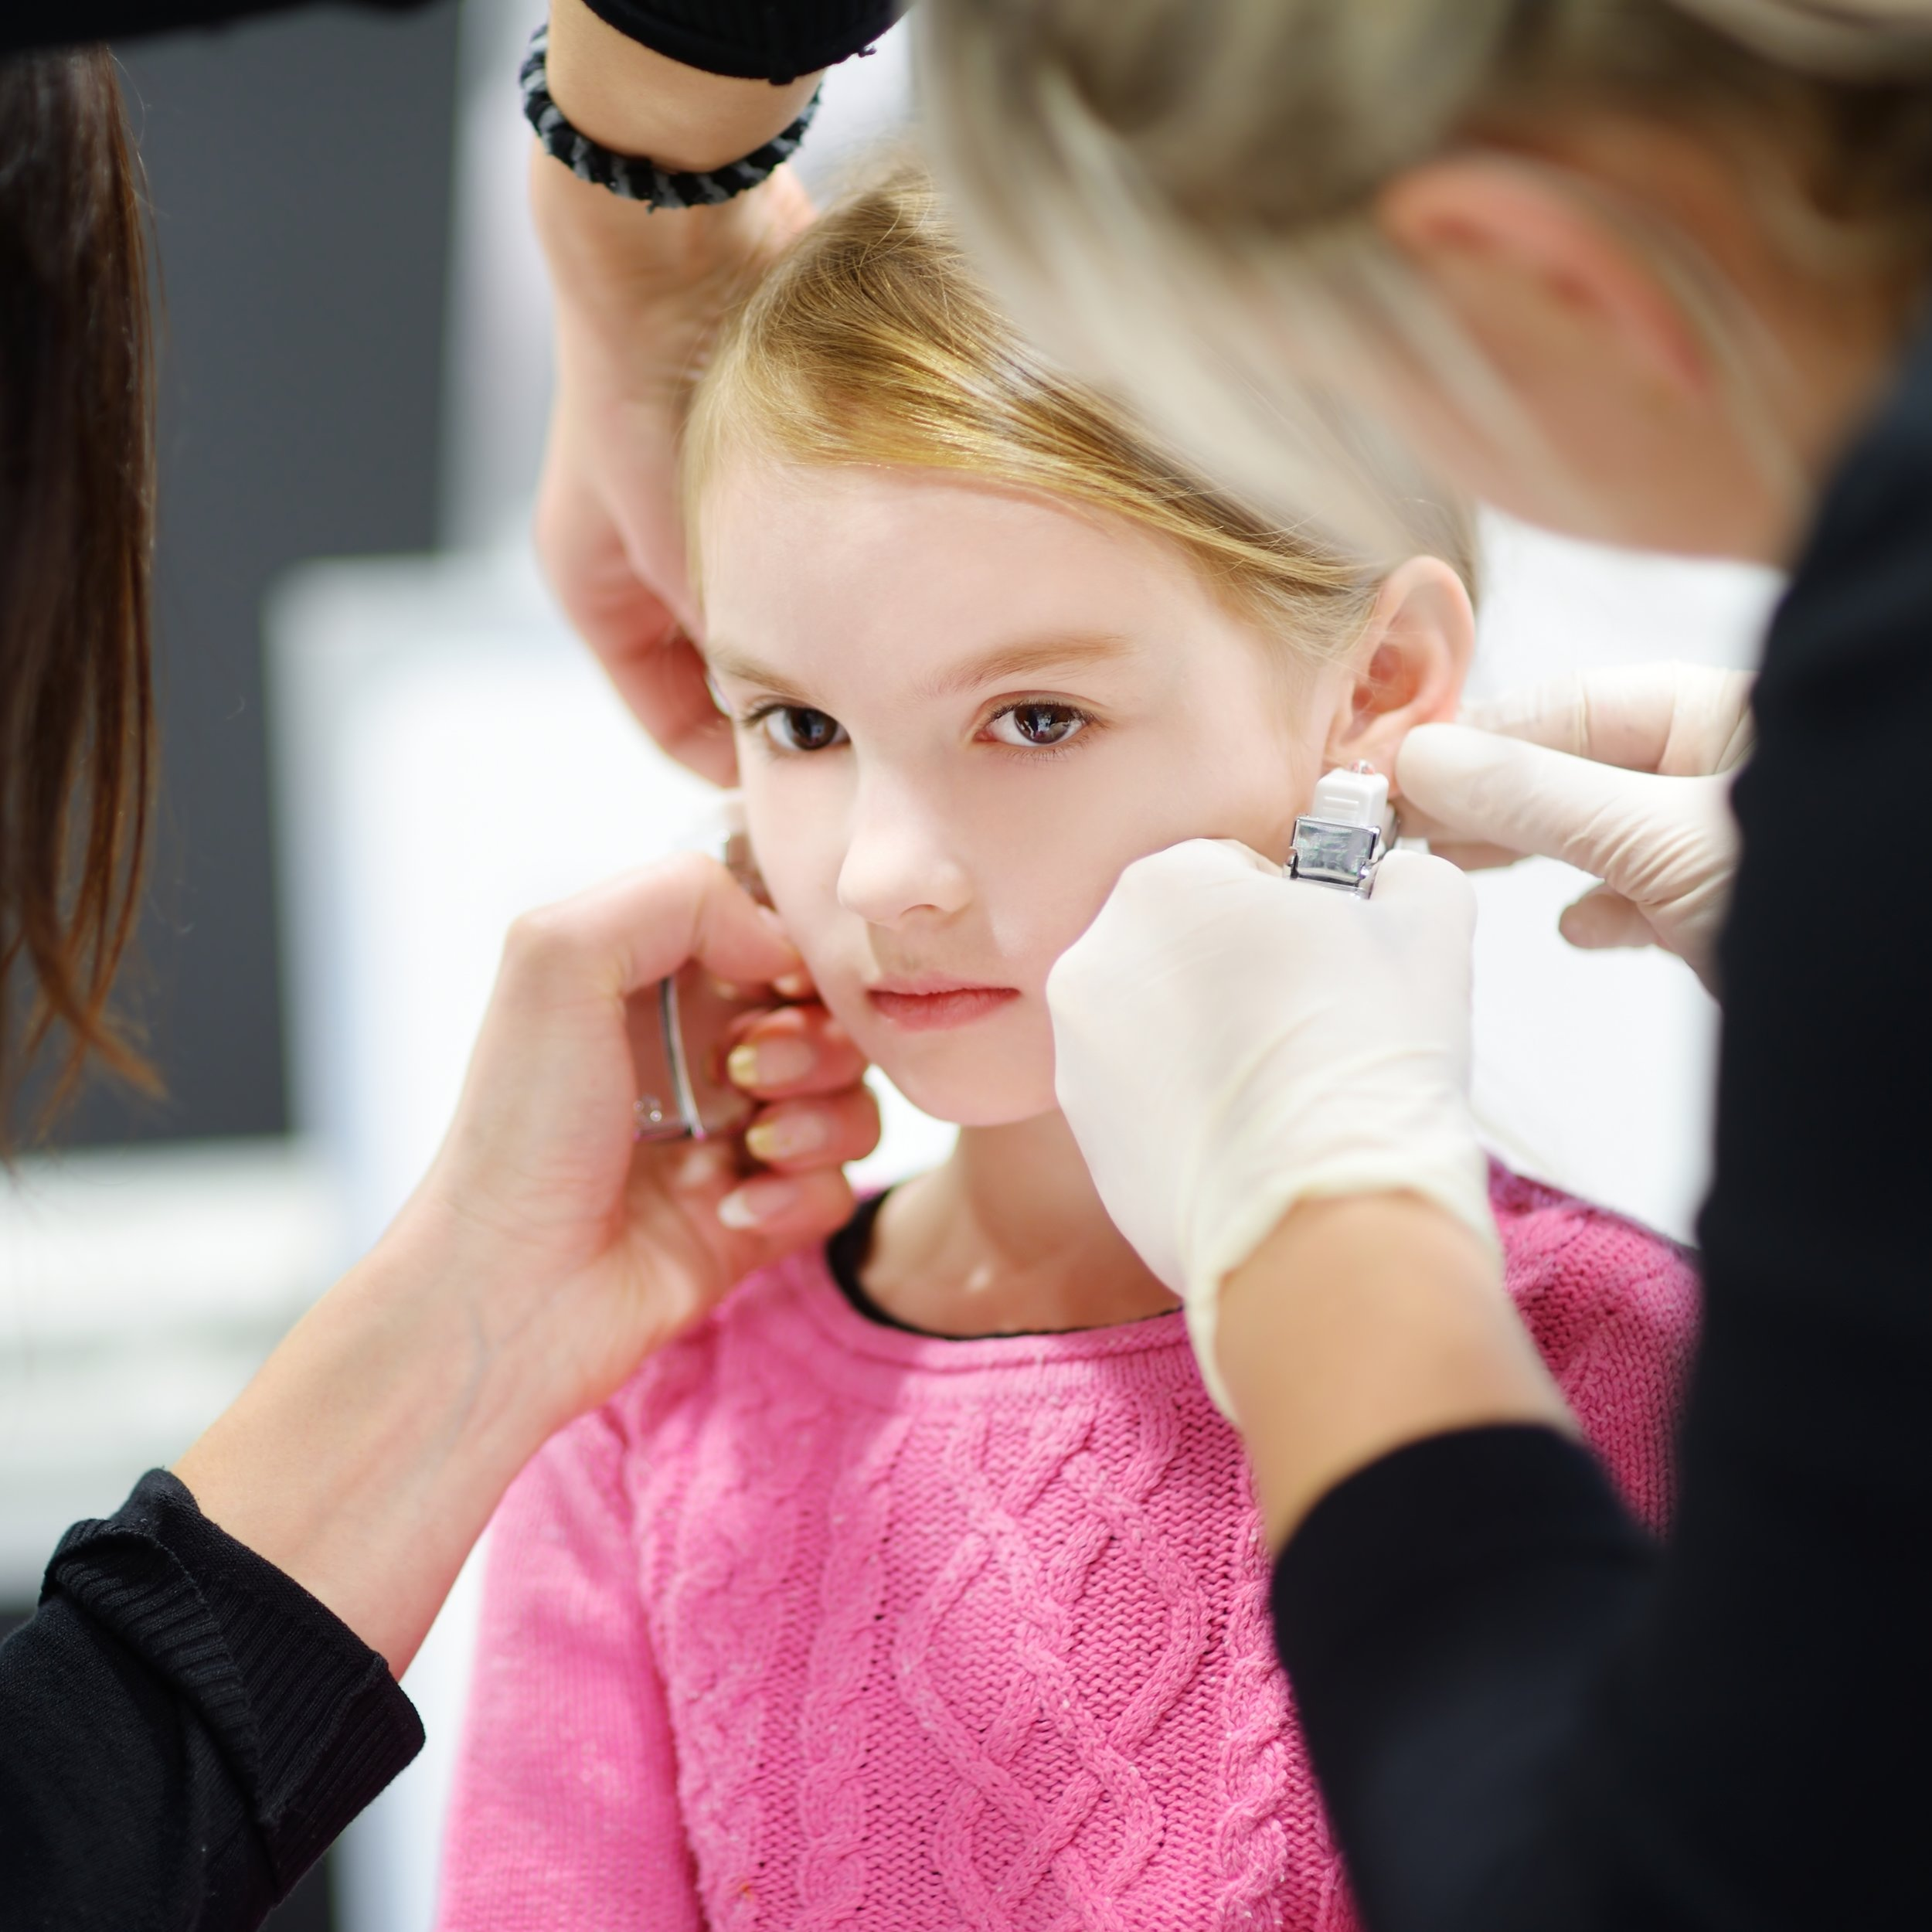 We do Ear Piercing for Children. - Are you looking for professional Baby/Child Ear Piercing? At KOKO TALLAGHT we have a wonderful female team on hand to ensure you and your child feels safe & comfortable.Cost is €18Call us on 01-4139000 to book an appointment